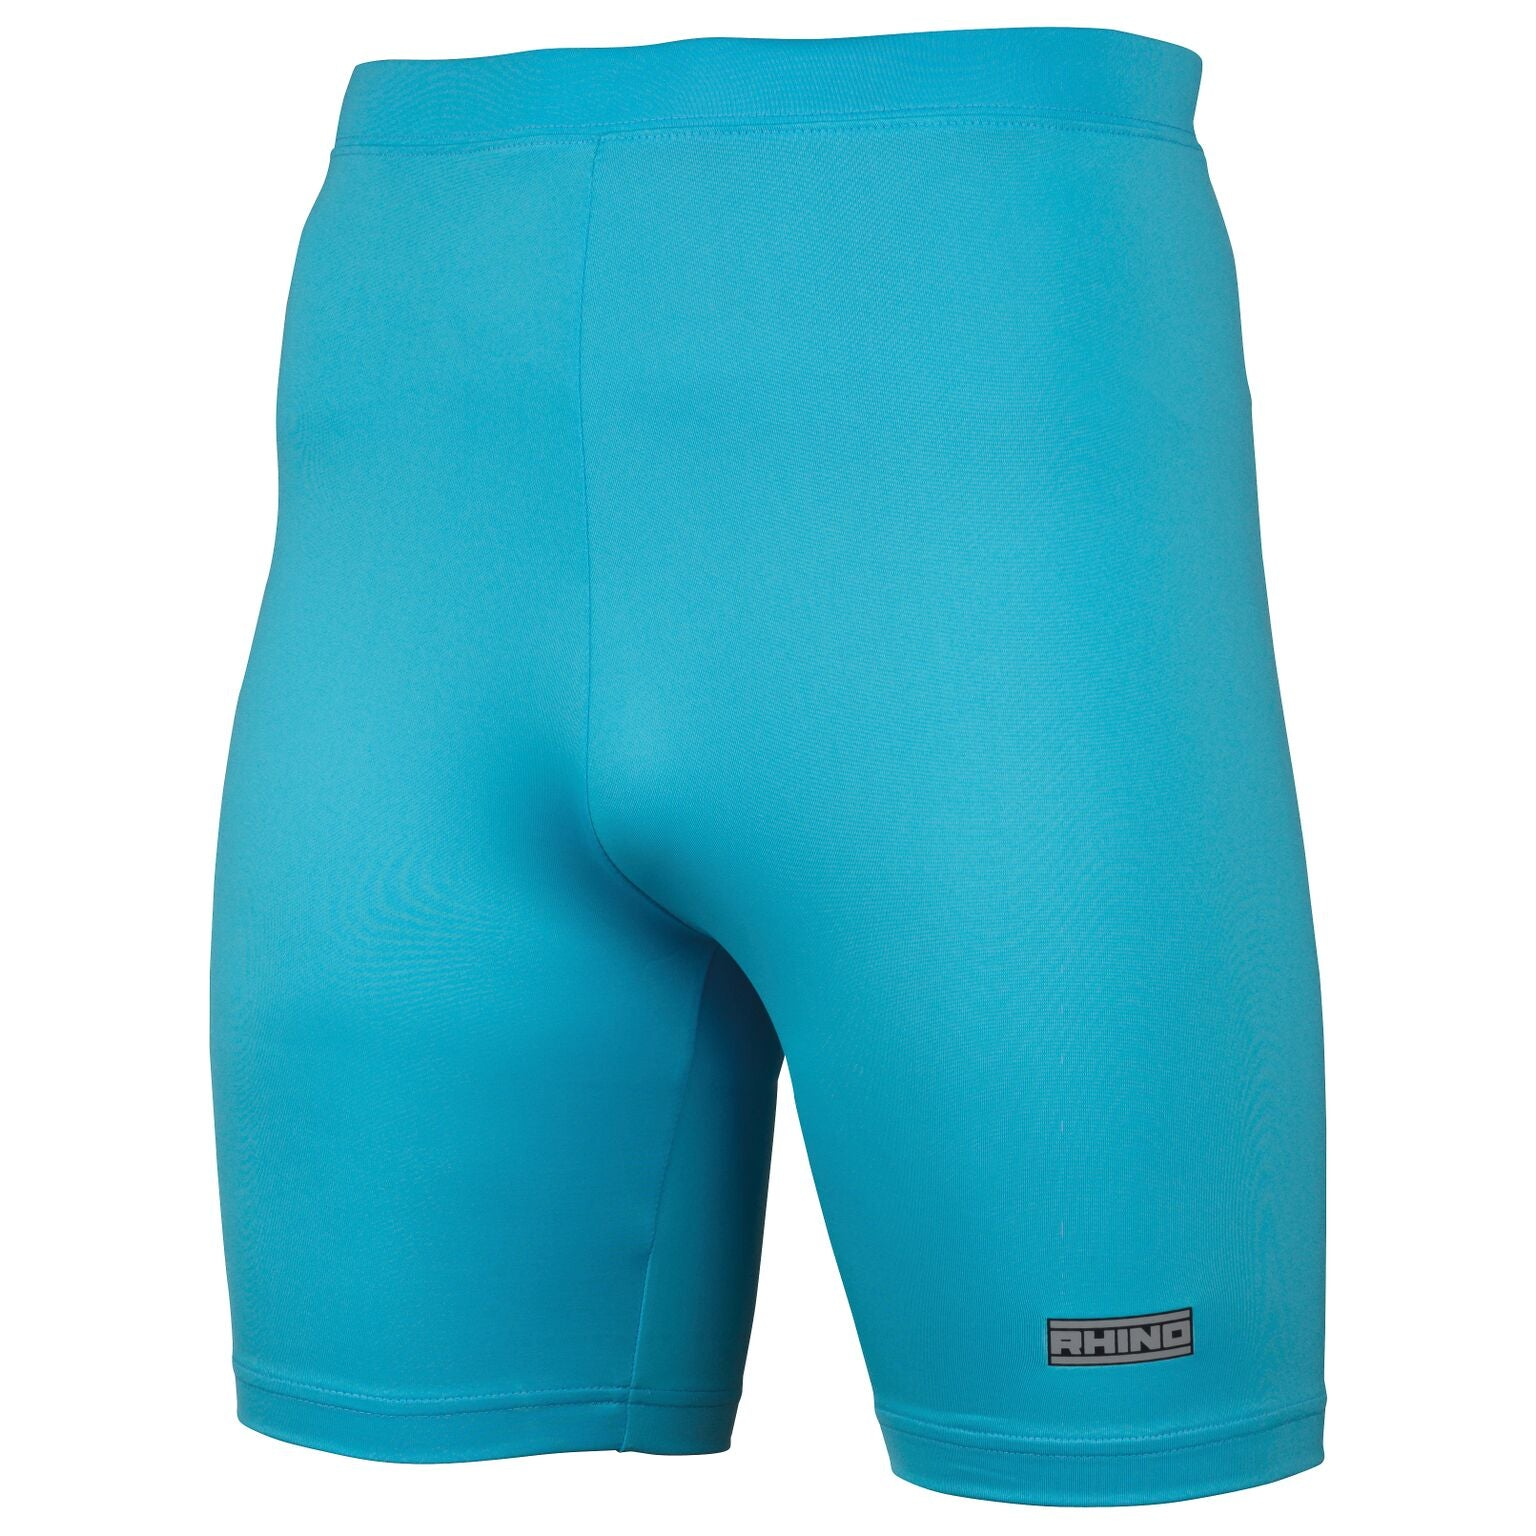 Rhino light blue base undershorts